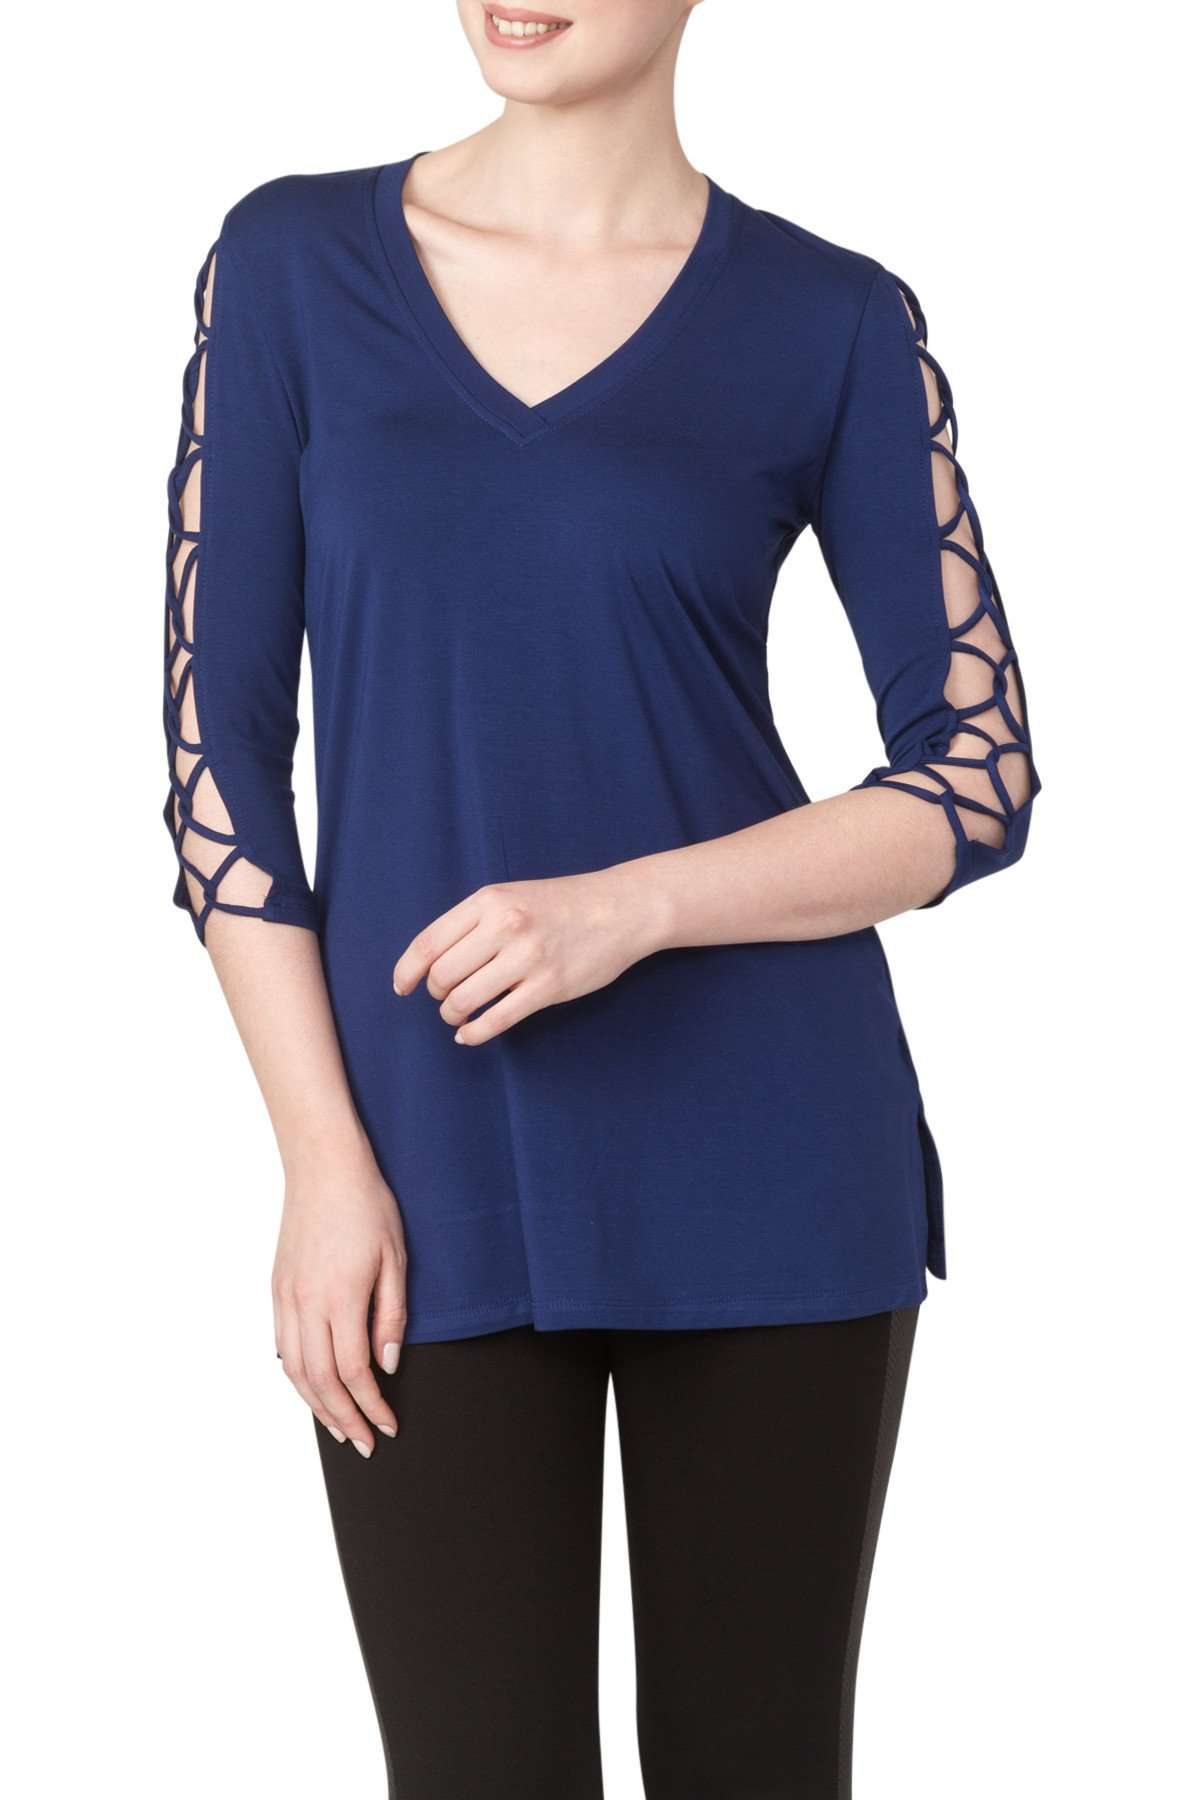 Royal Blue Long Tunic Top With Sleeve Detail-Butter soft Fabric-Top Quality - Yvonne Marie